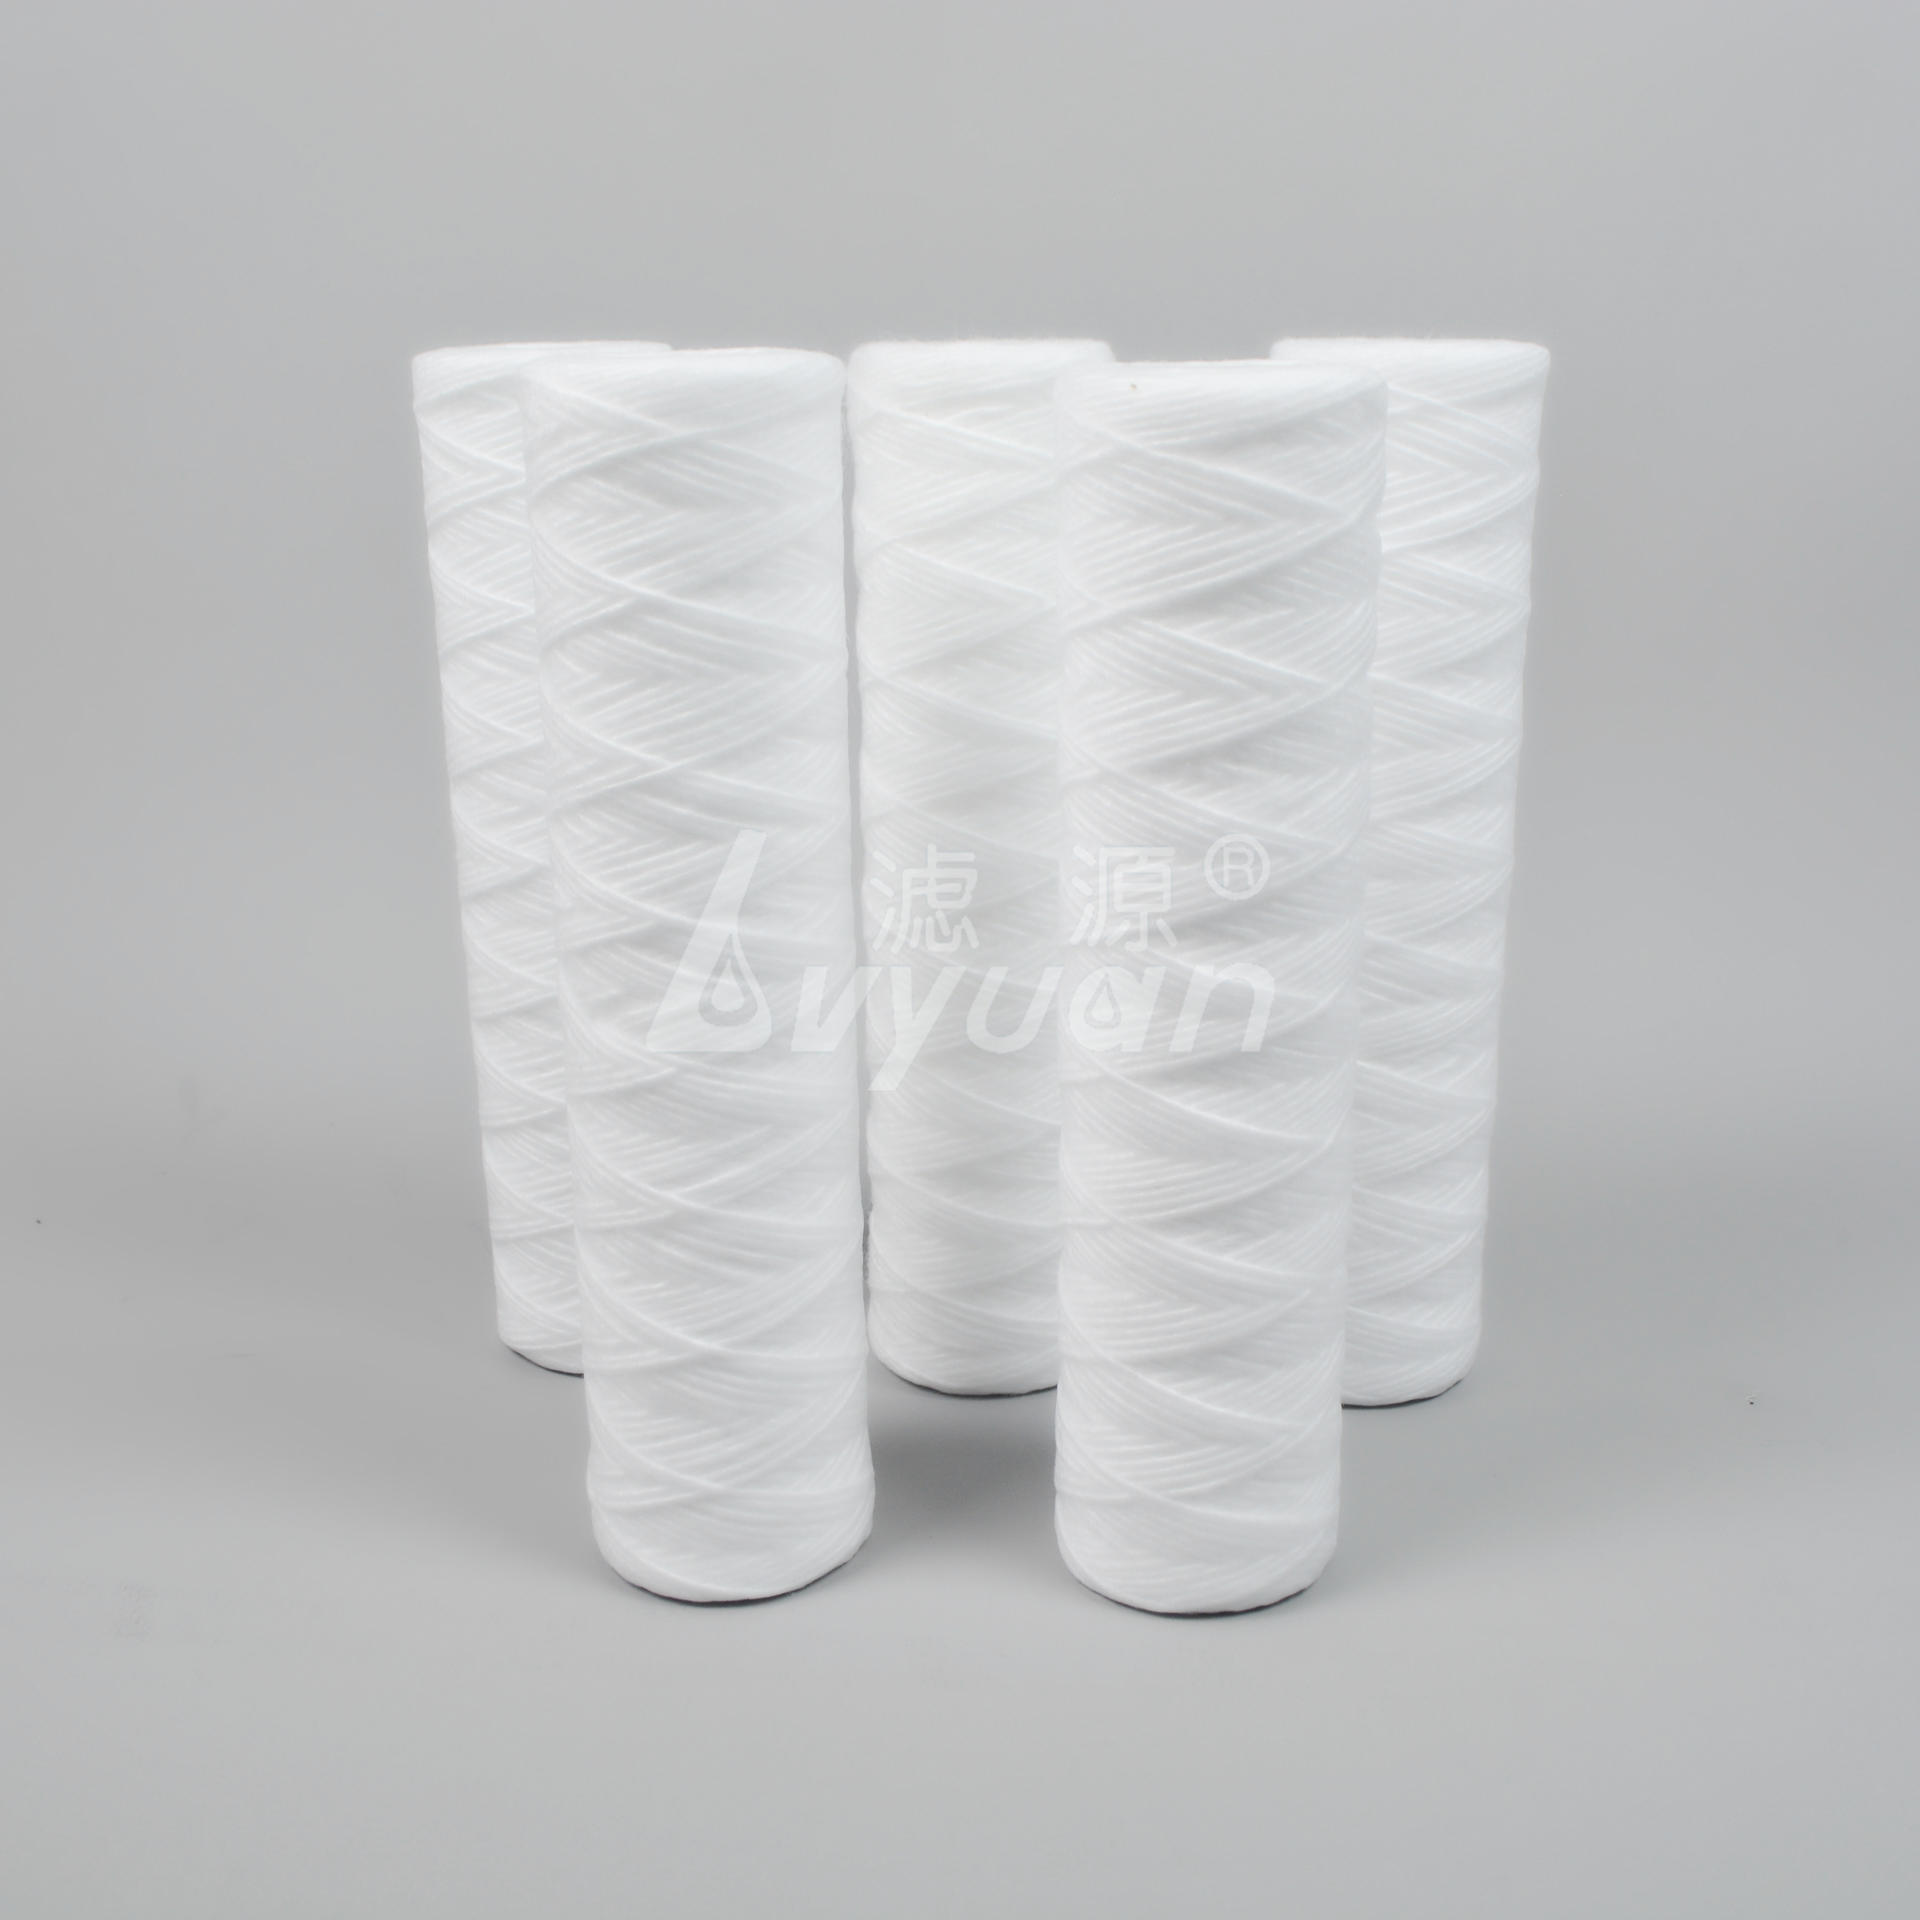 wound filter/fiberglass/cotton wound sedimentFilter Cartridge for food and beverage filtration